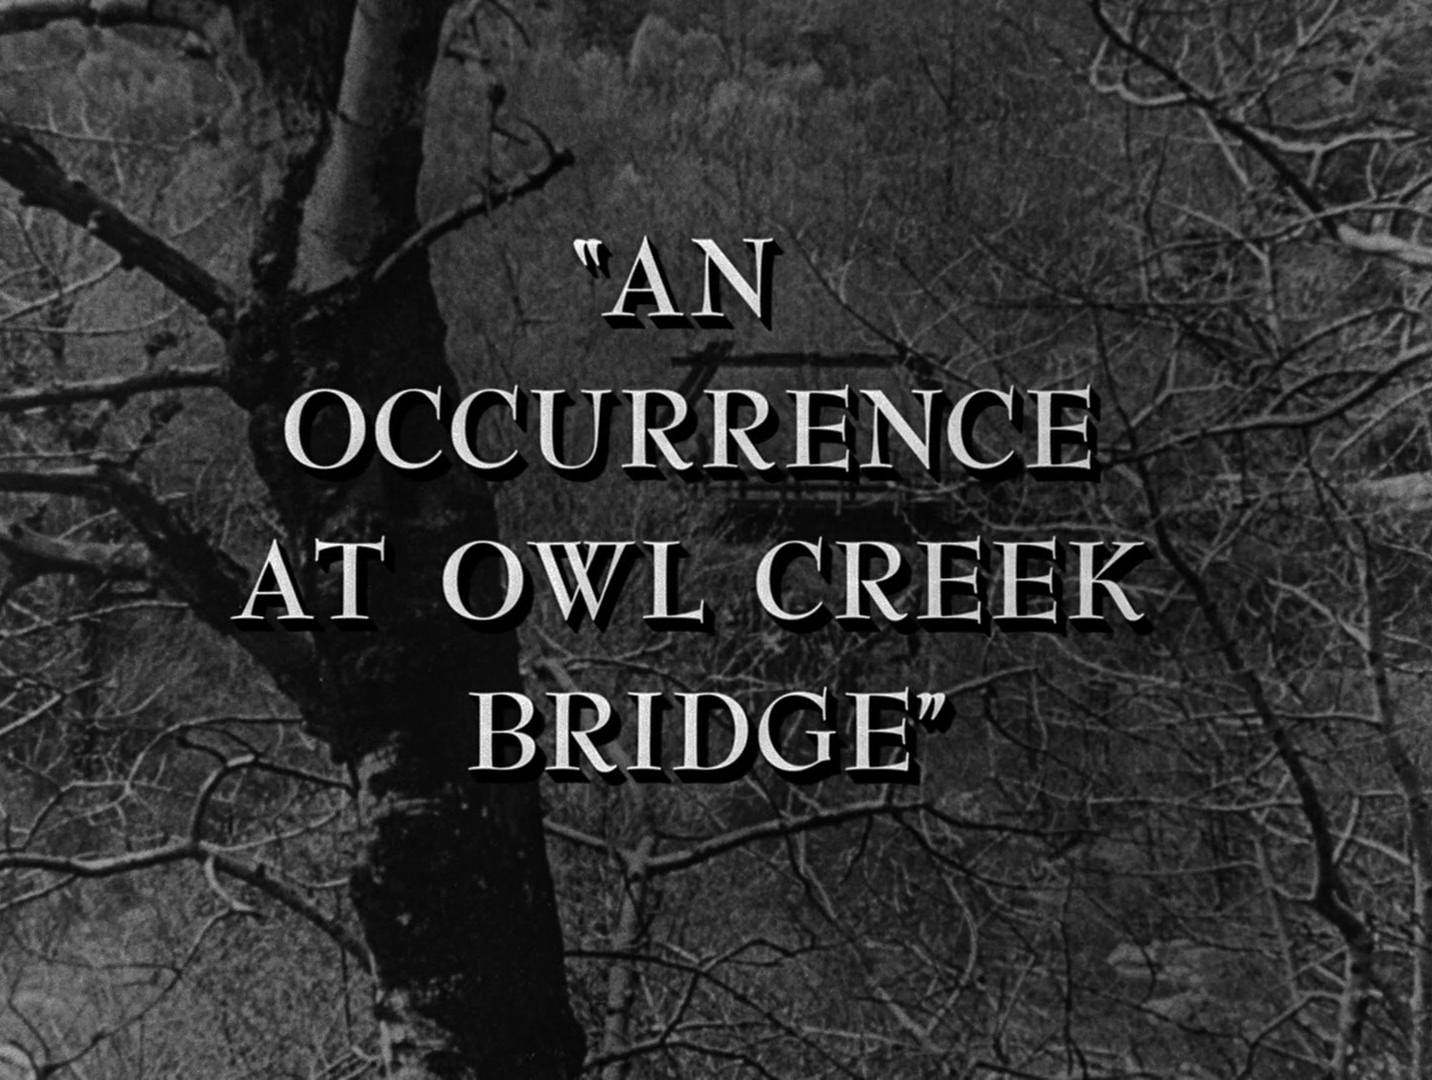 an analysis of ambrose bierces short story an occurrence at owl creek bridge An occurrence at owl creek bridge: literary analysis an occurrence at owl creek bridge, a short story with a setting during the civil war, was written by ambrose bierce in 1890 the main character, peyton farquhar, is caught messing with the bridge and is sentenced to hang.